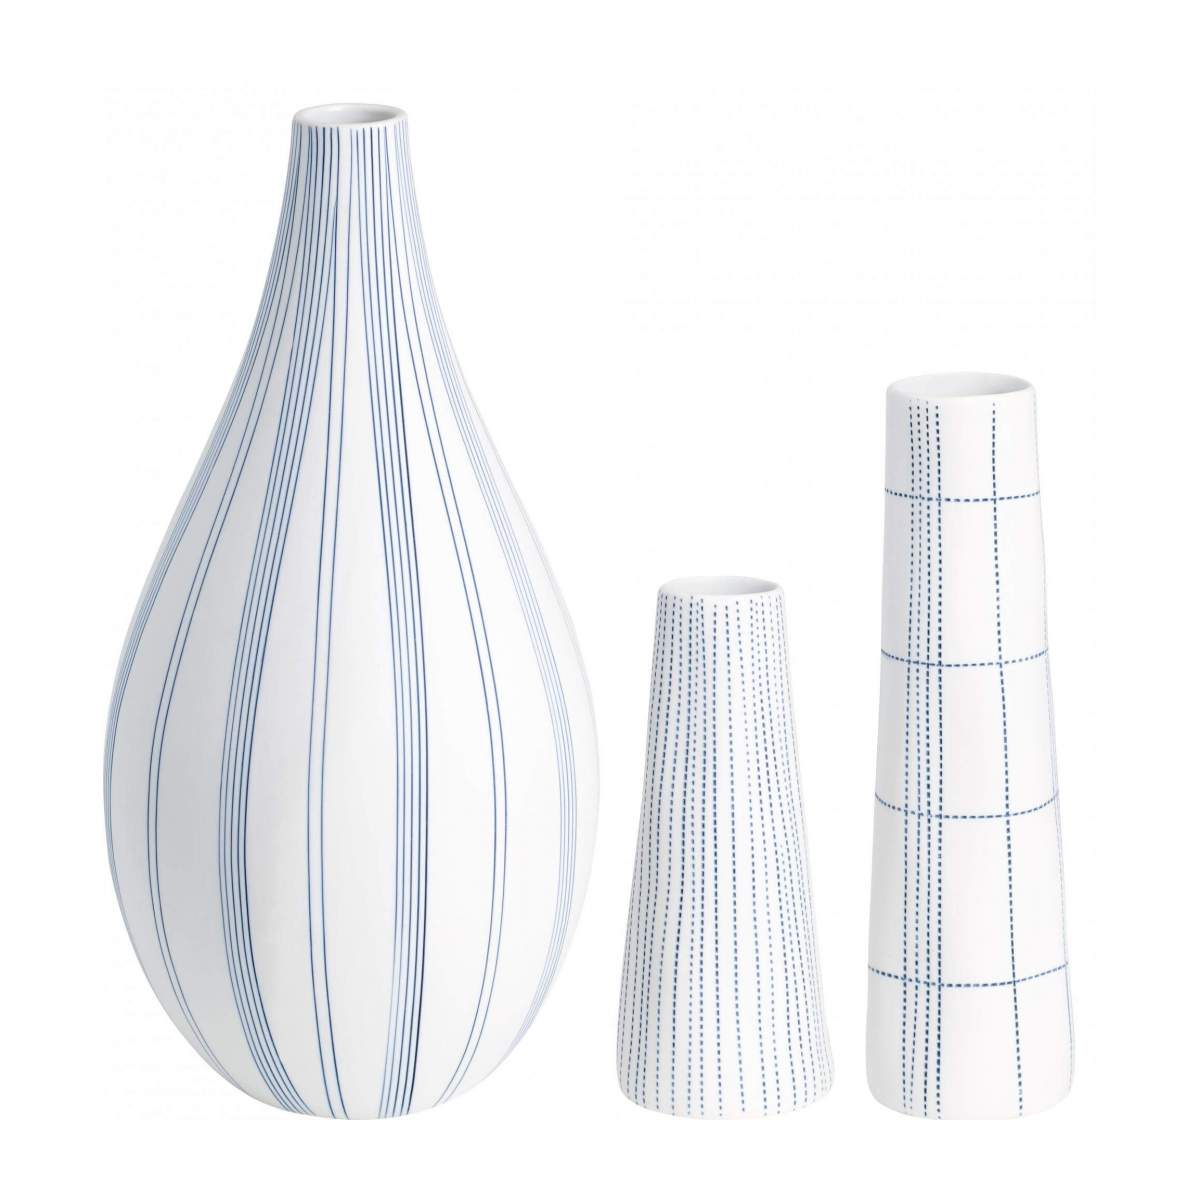 Vase en porcelaine - Points Bleus n°3